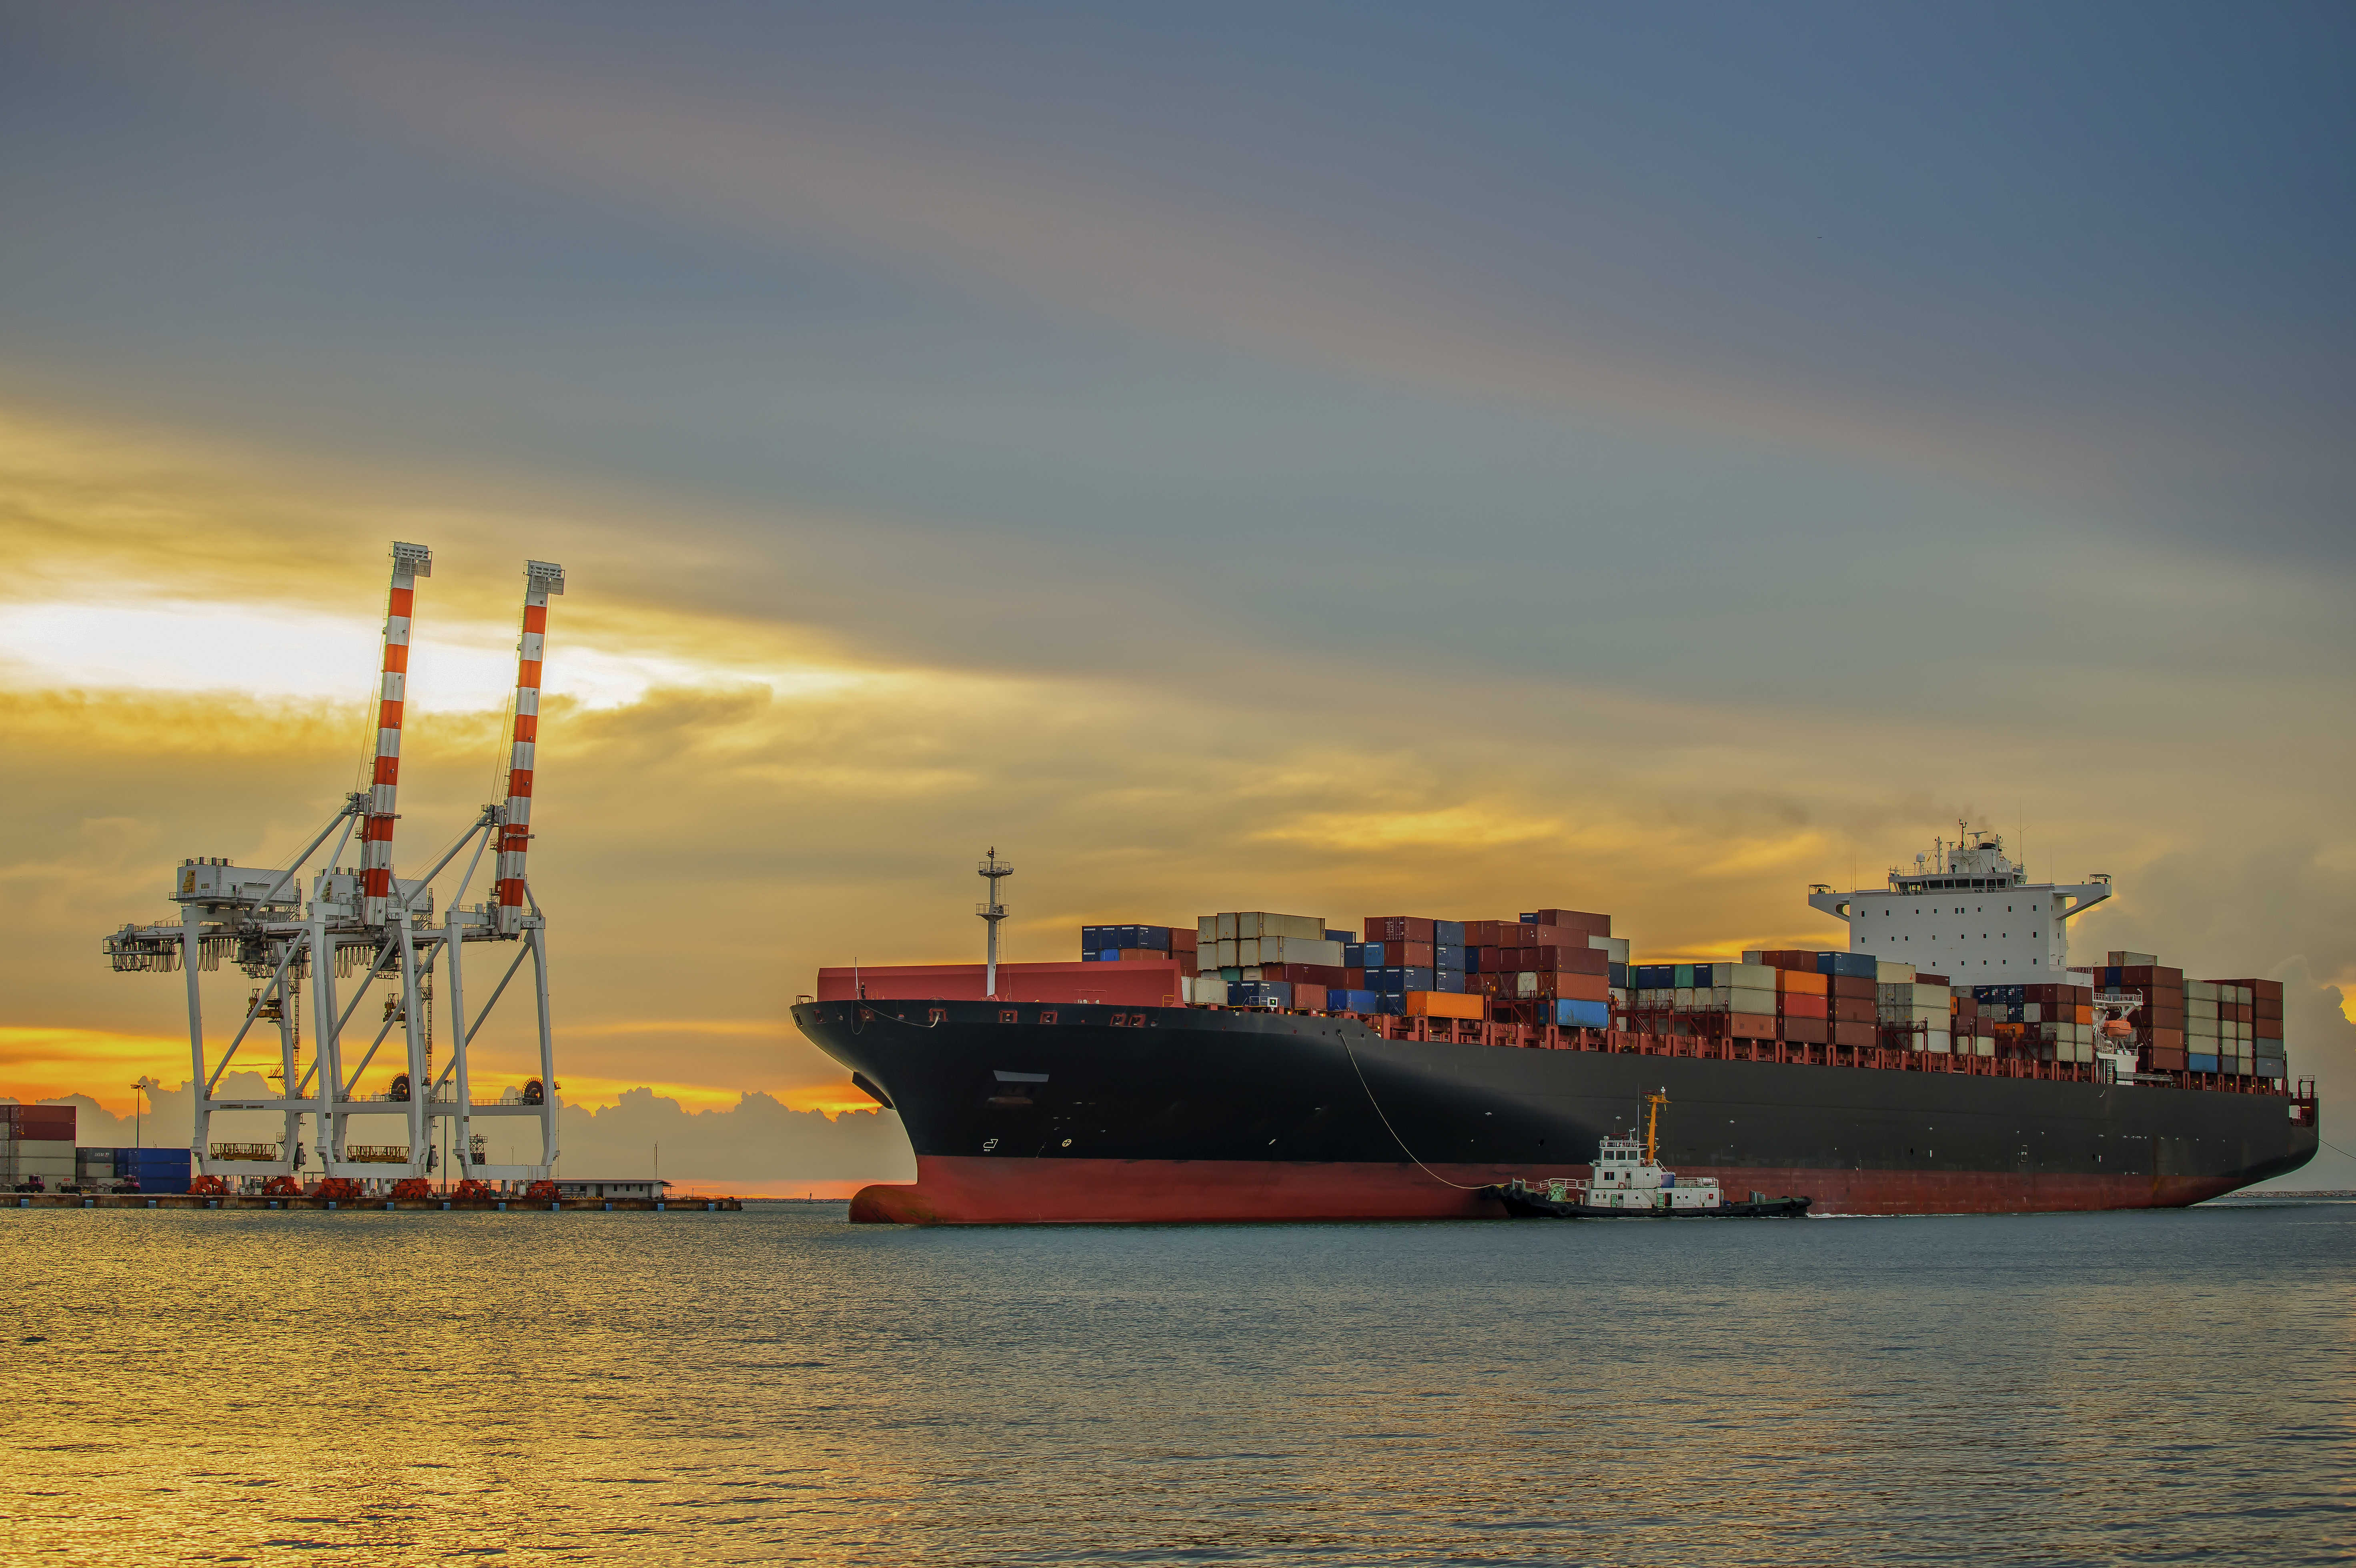 Shift of Freight from Ocean Carriers to Freight Forwarders/NVOCCs